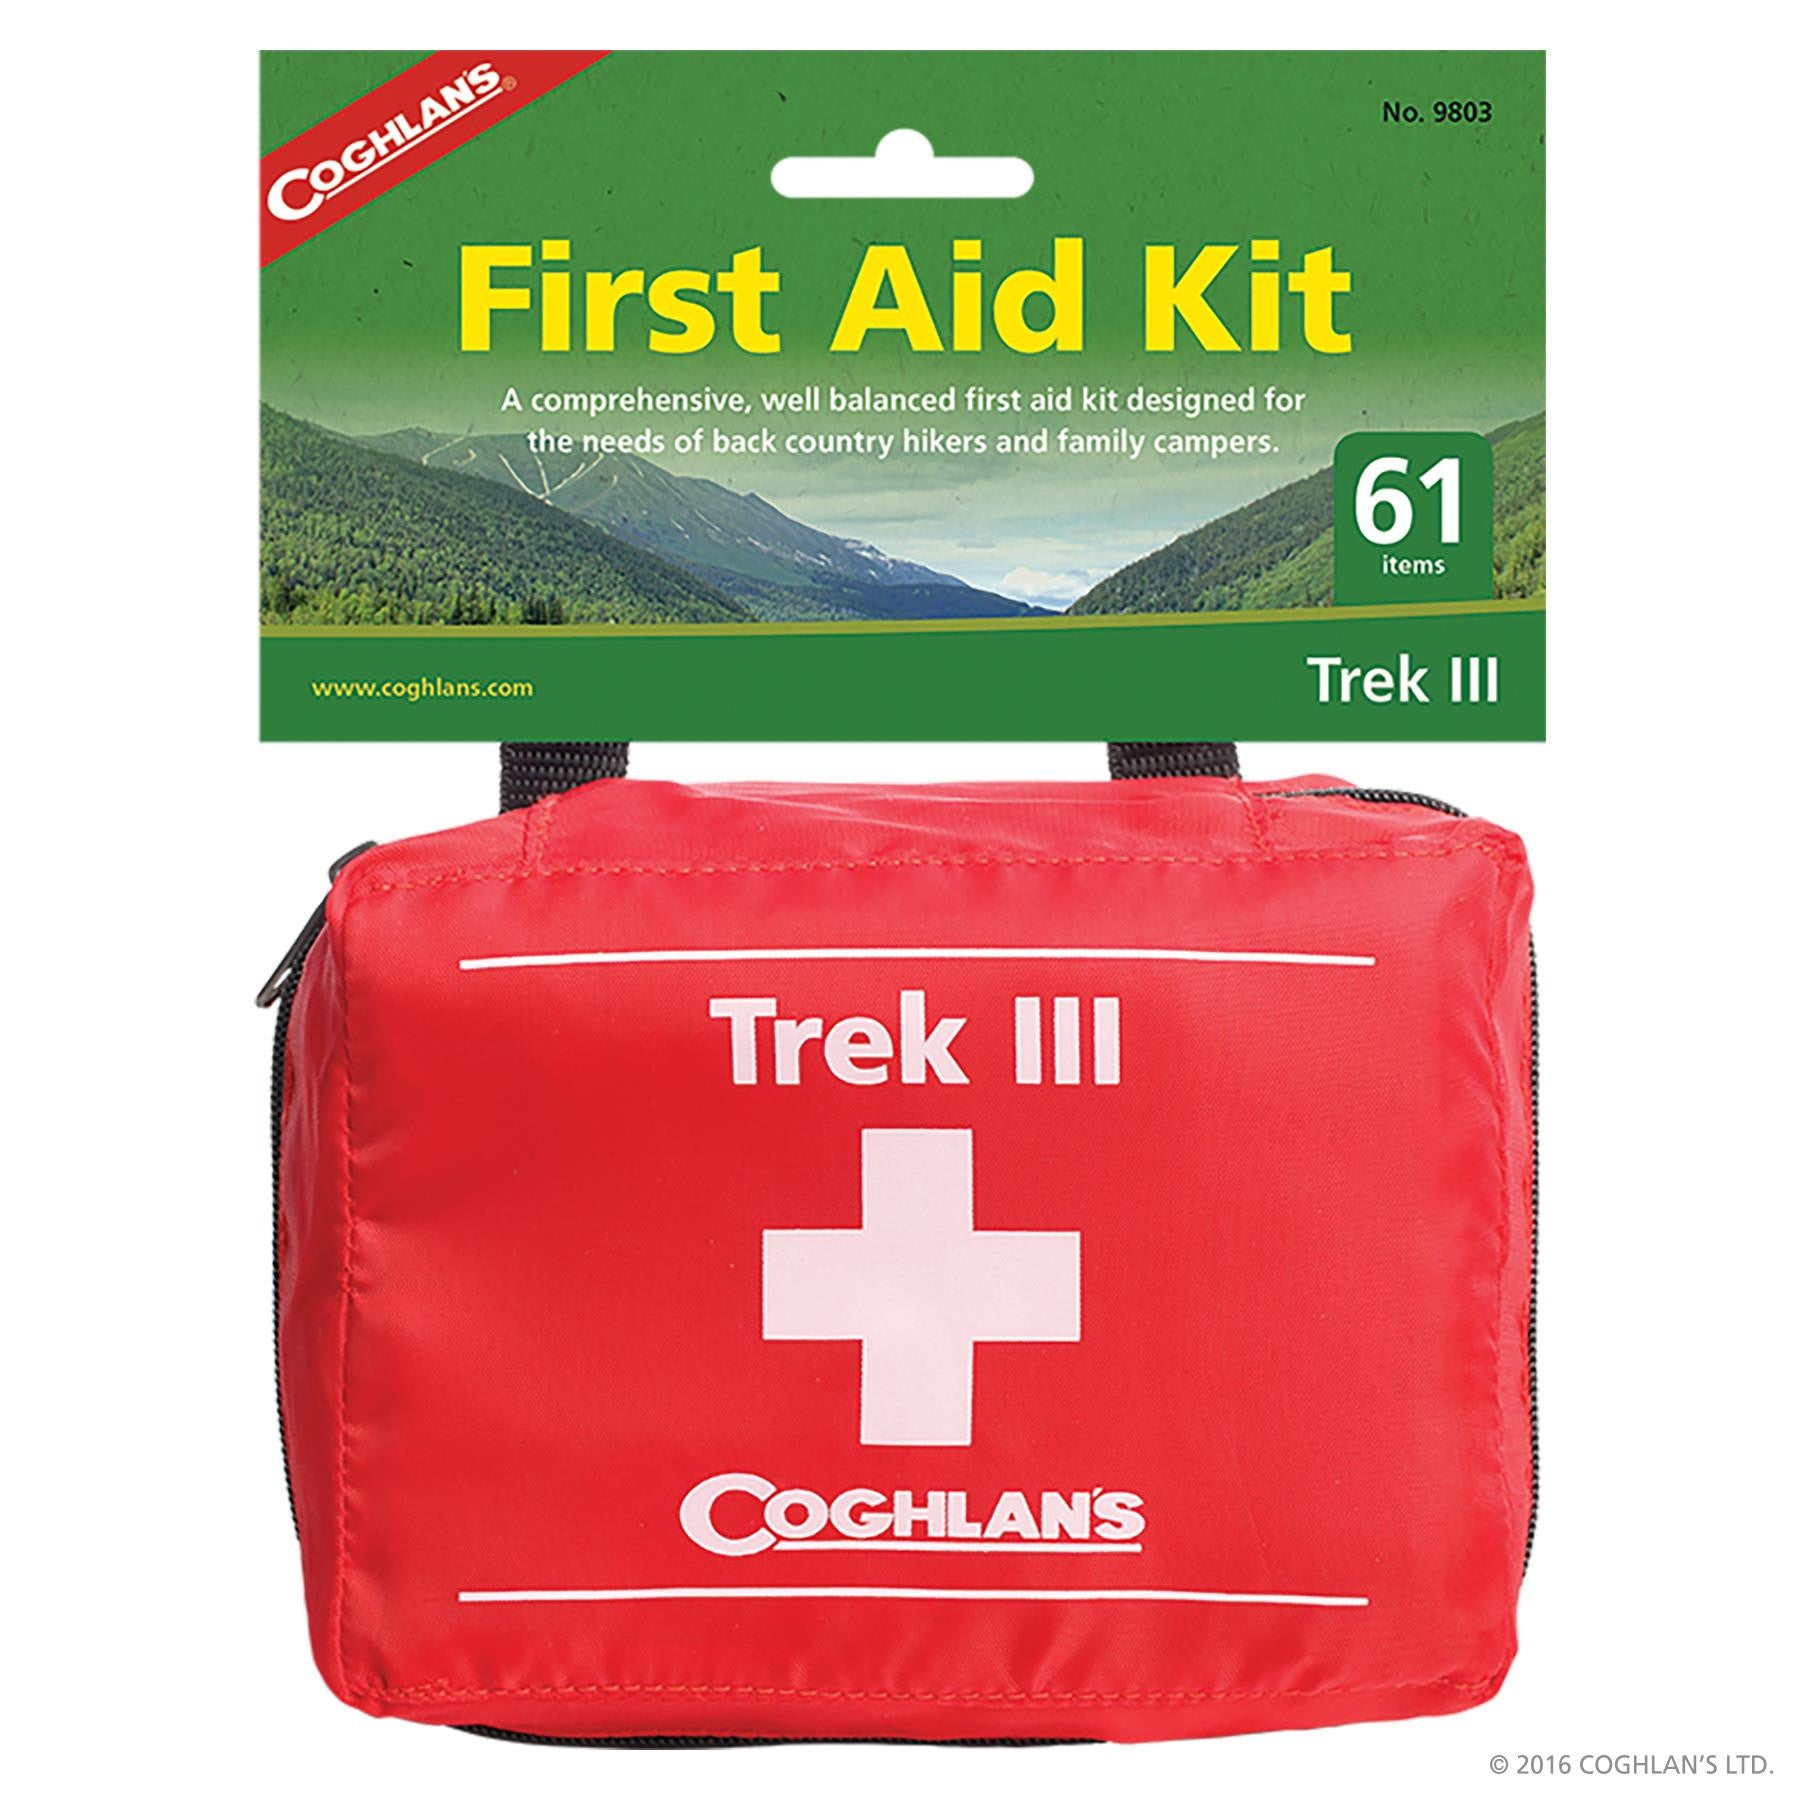 First Aid Kit Trek III